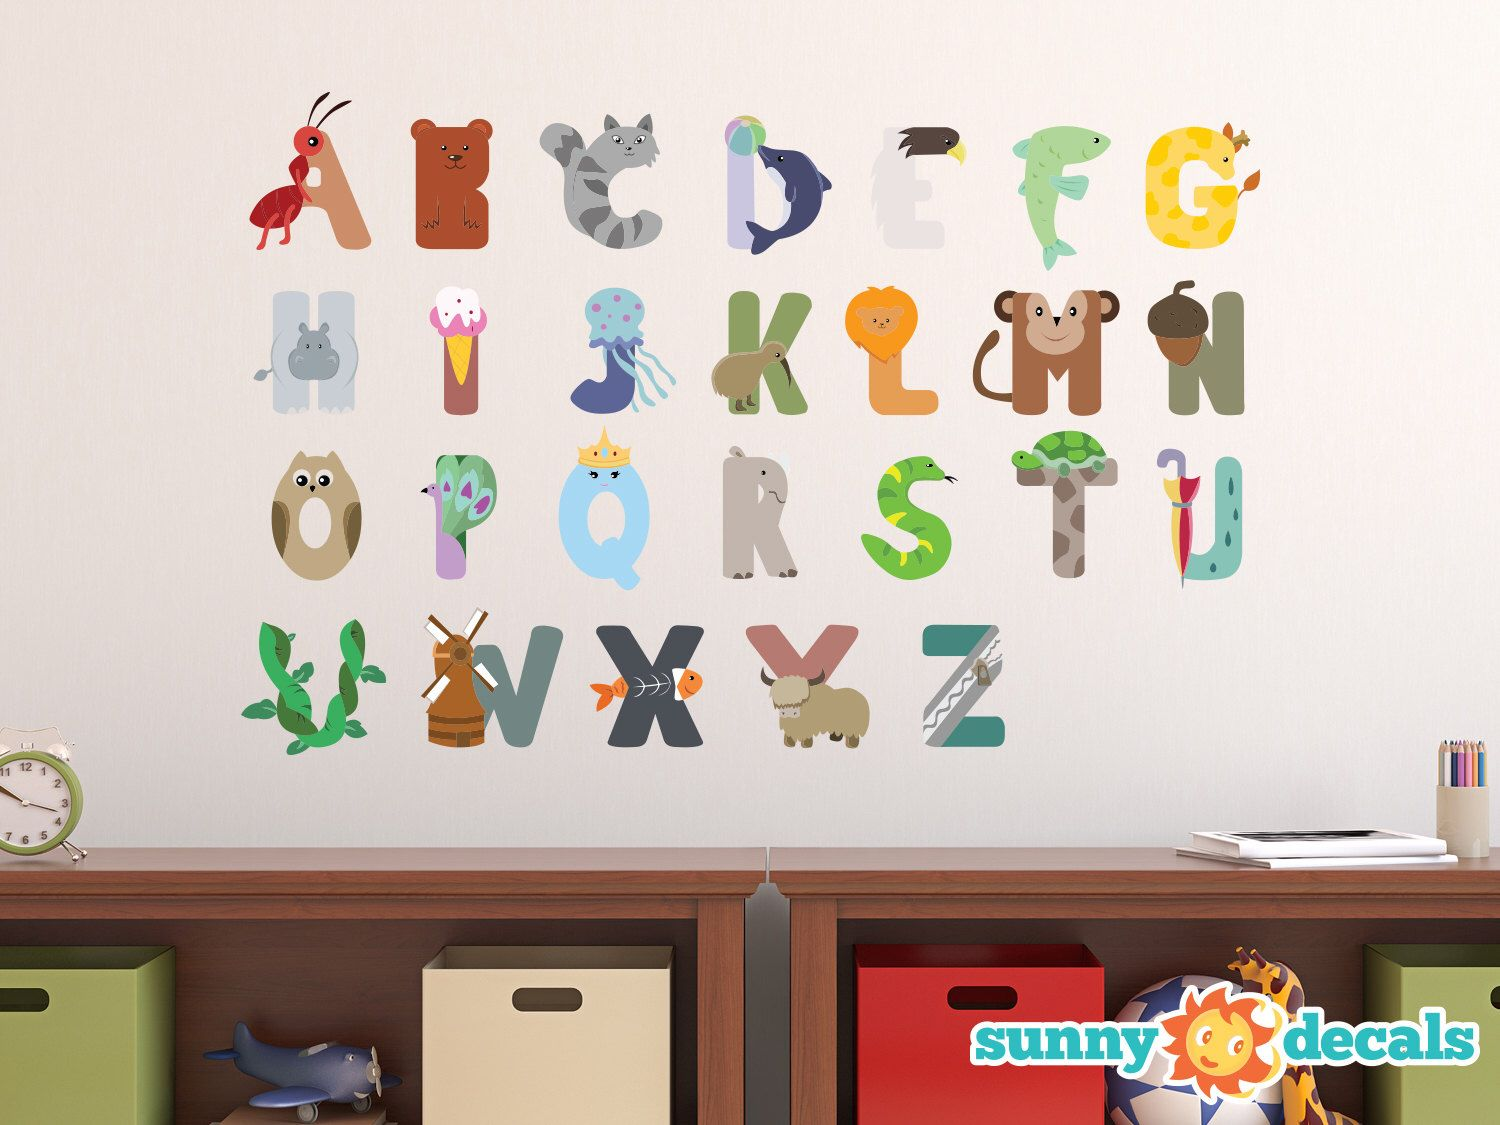 Animal Alphabet Fabric Wall Decals, Repositionable and Reusable, ABC Decals with Animals and Fun Characters by Sunny Decals by SunnyDecals on Etsy https://www.etsy.com/listing/190072162/animal-alphabet-fabric-wall-decals